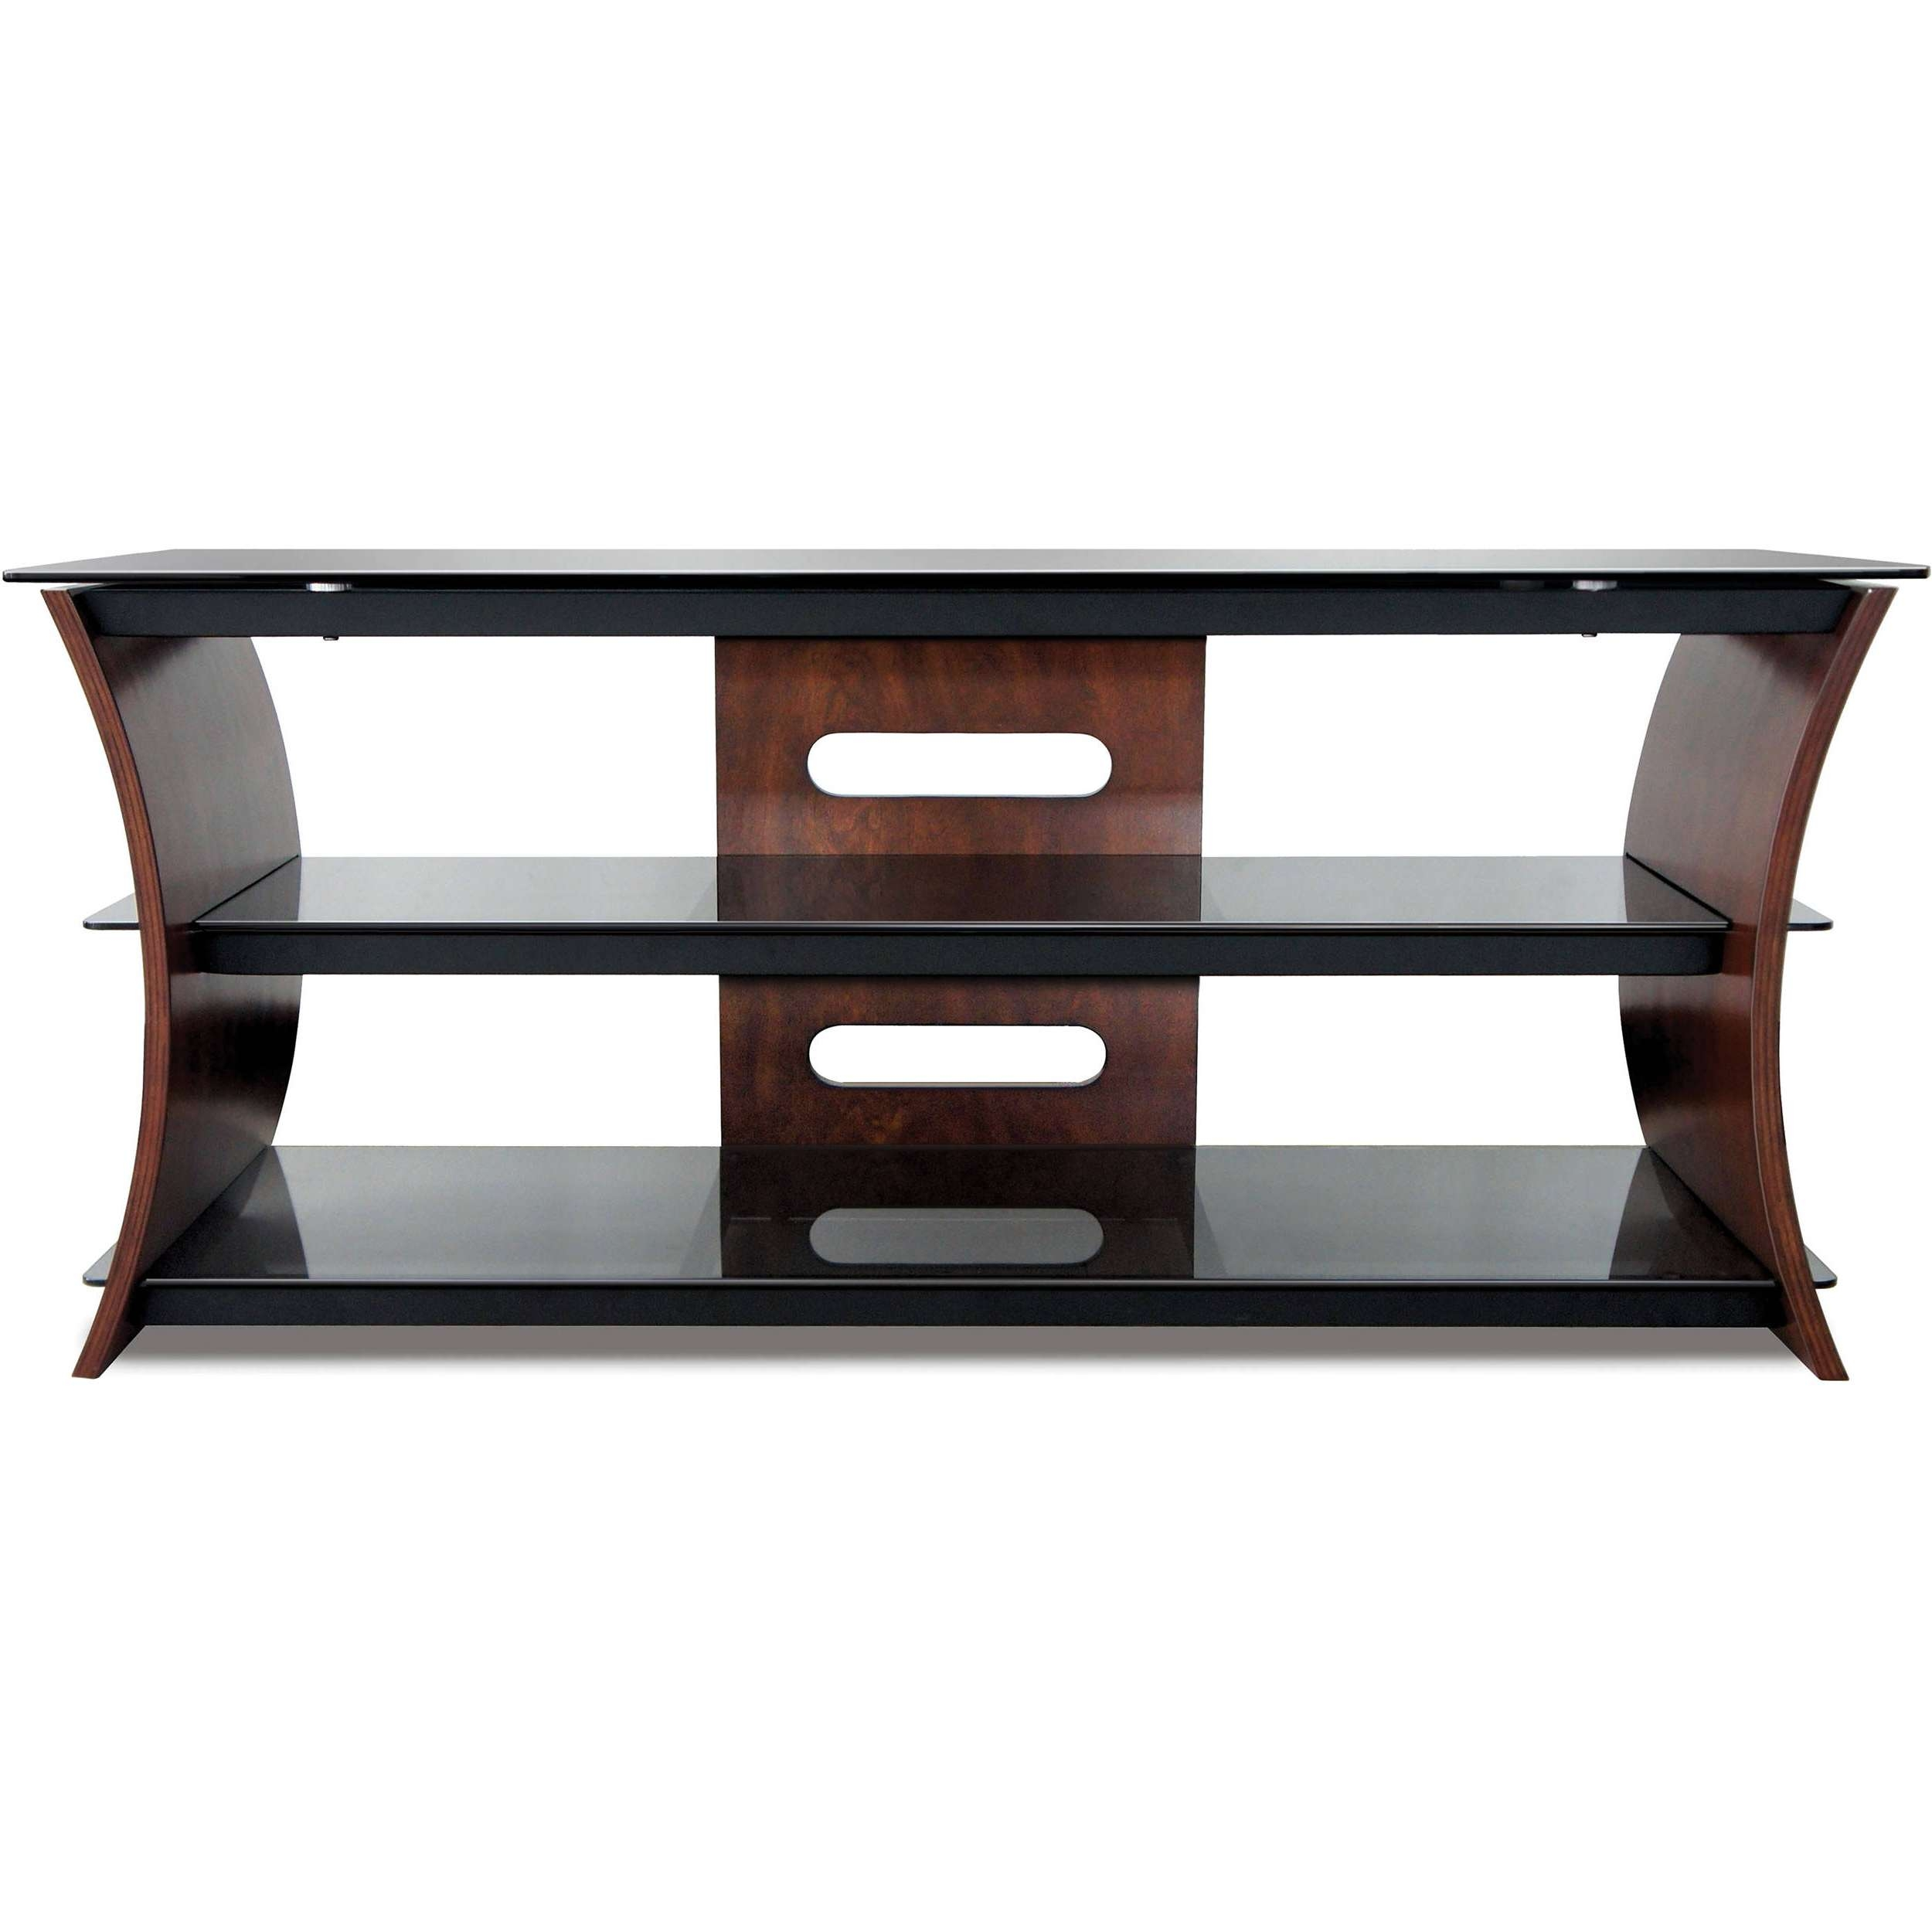 Bell'o Cw356 Curved Wood Tv Stand Cw356 B&h Photo Video Intended For Wooden Tv Stands (View 8 of 15)